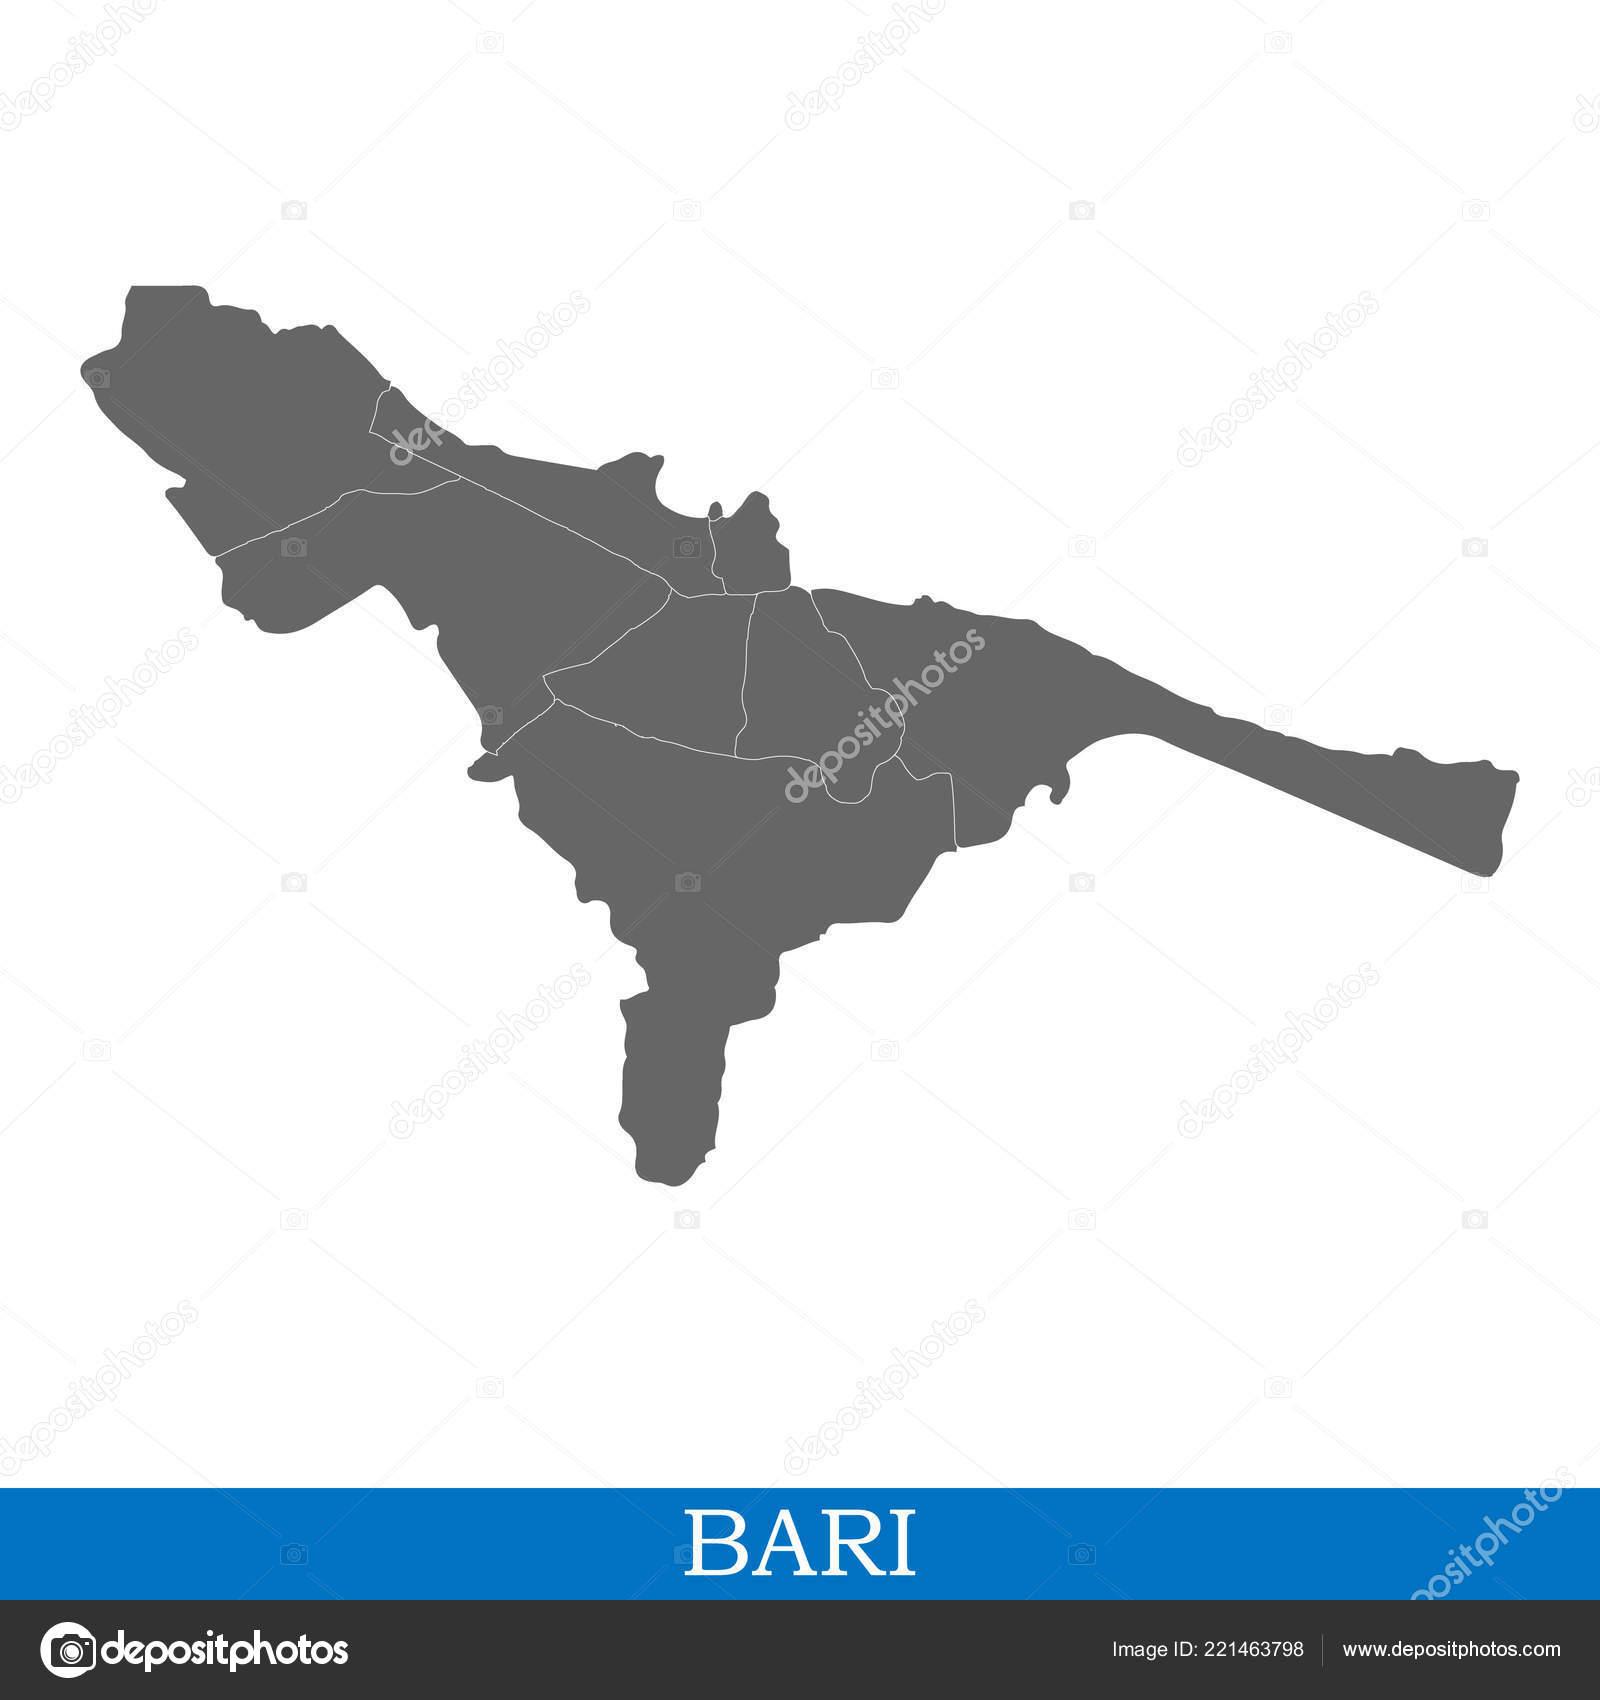 High Quality Map Bari City Italy Borders Districts Stock Vector